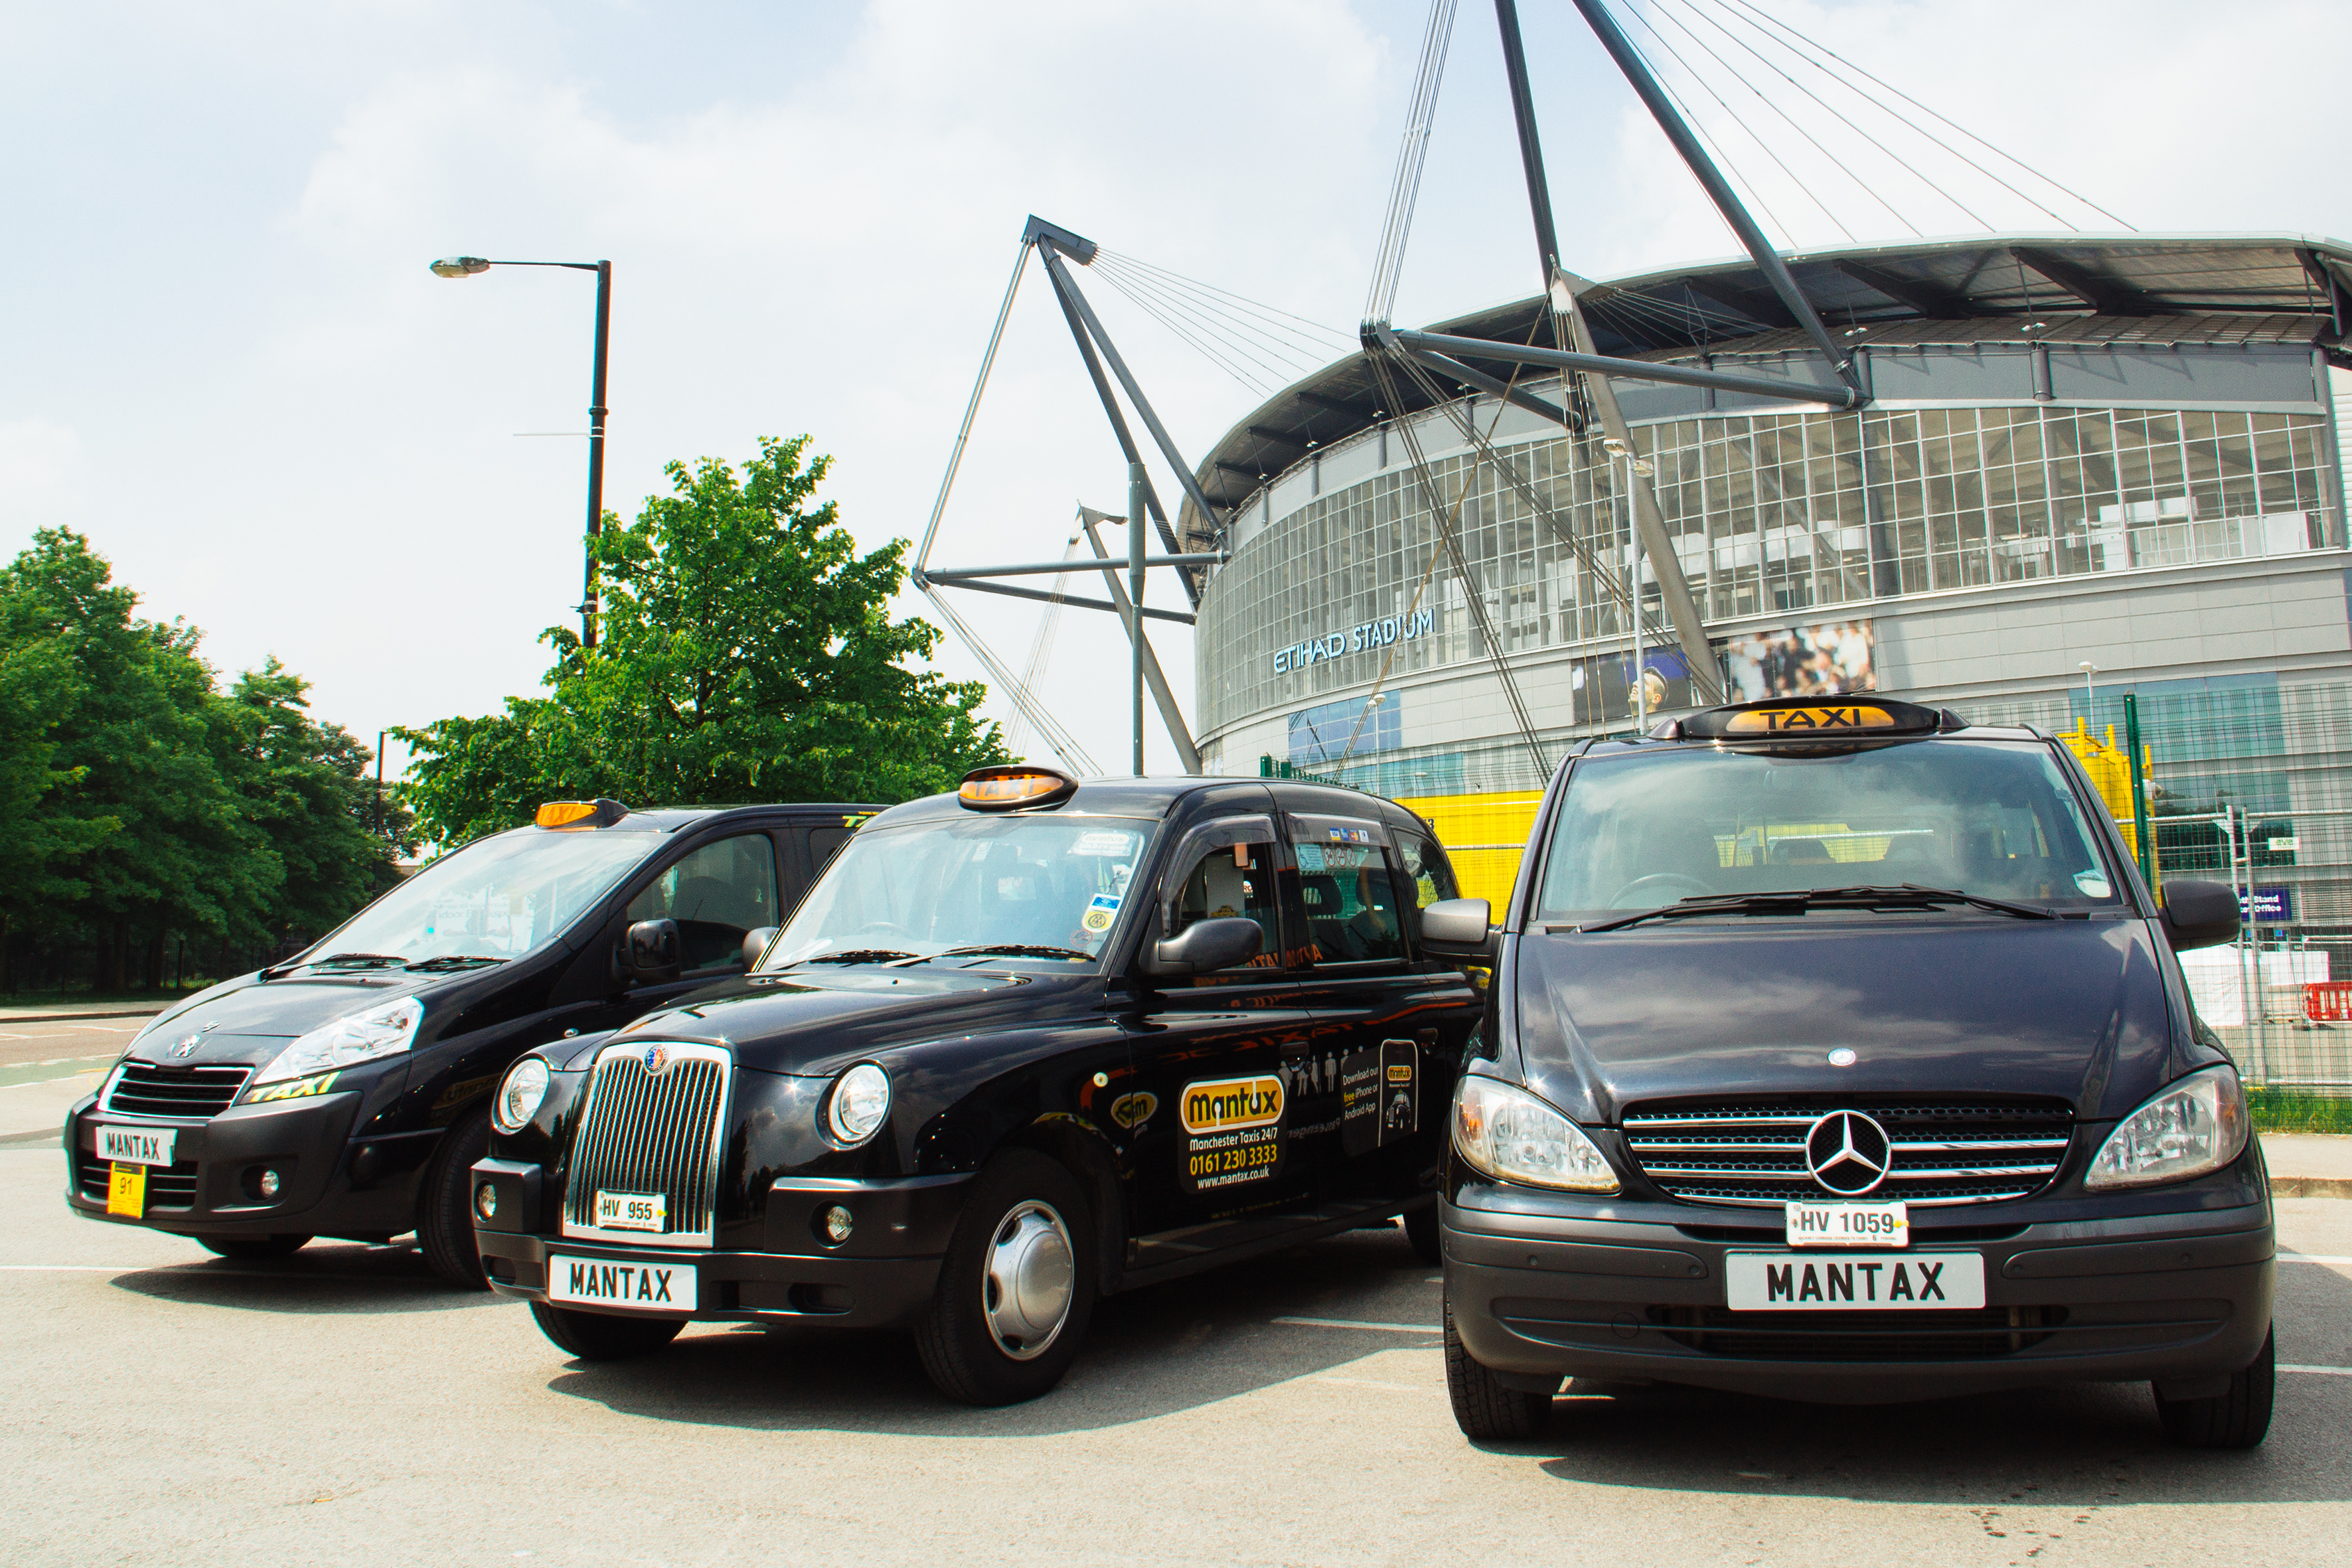 Mantax | Manchester's Largest Fleet Of Black Cabs